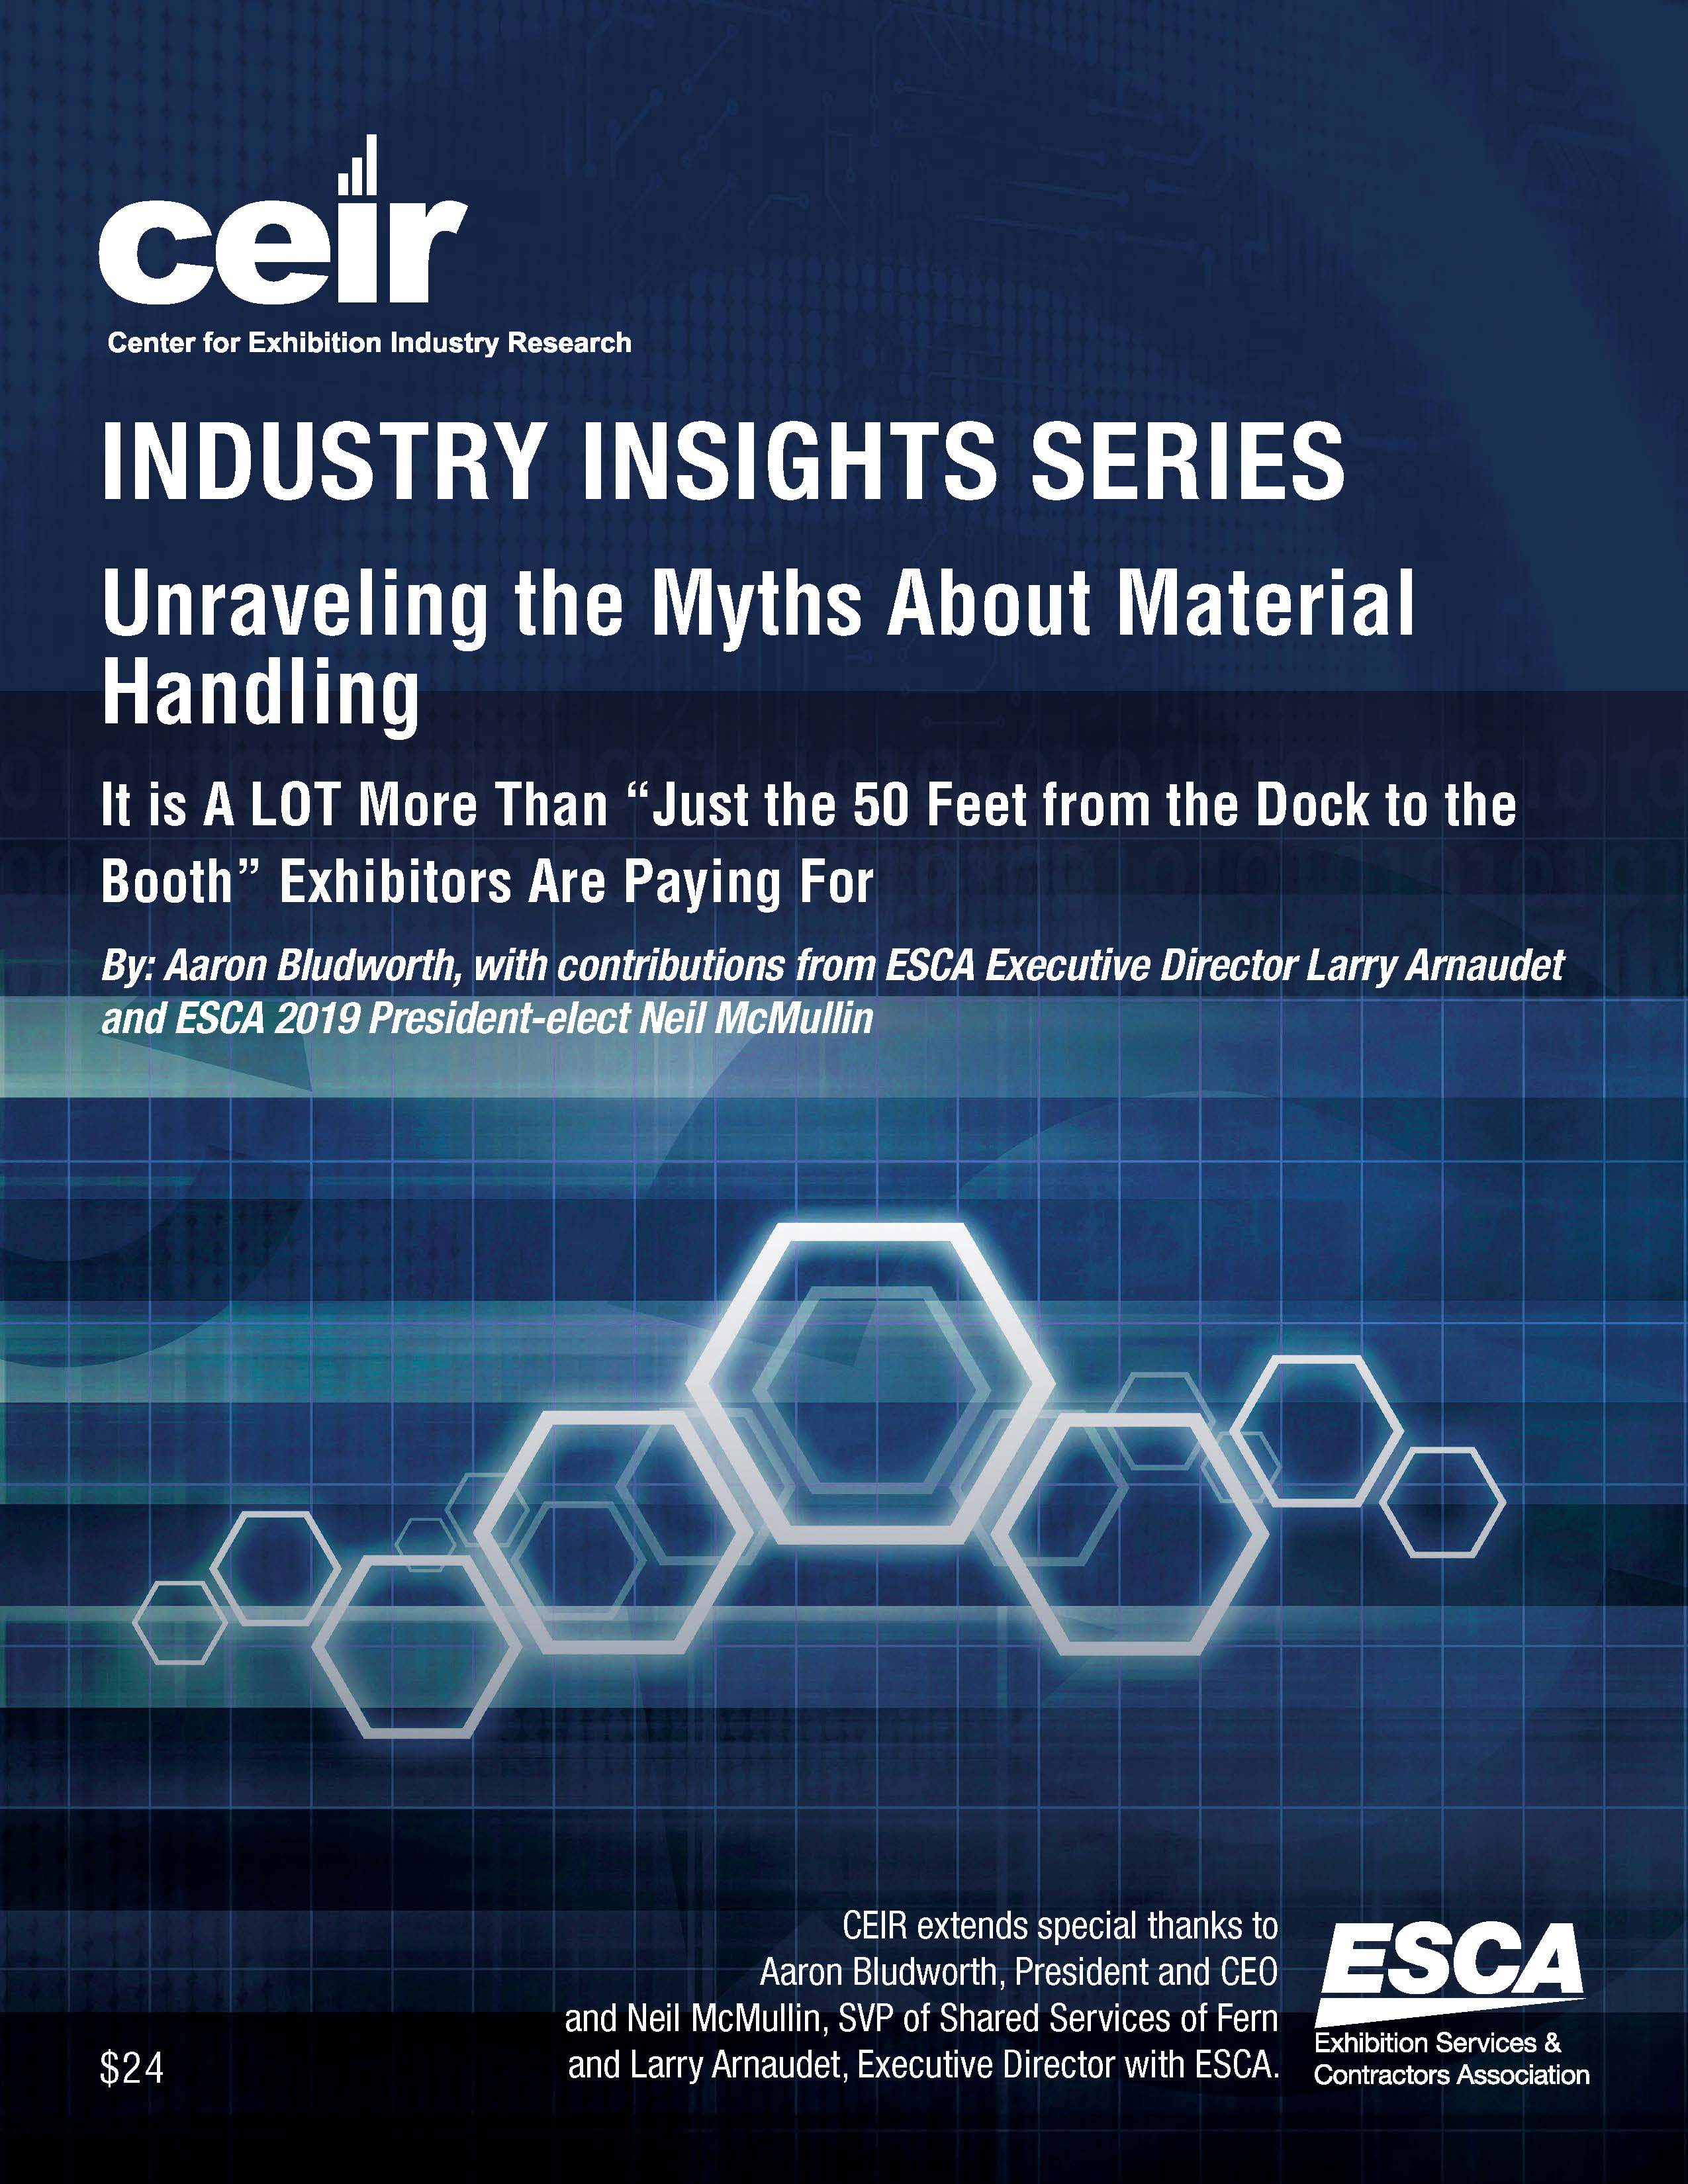 Unraveling the Myths About Material Handling (2019)